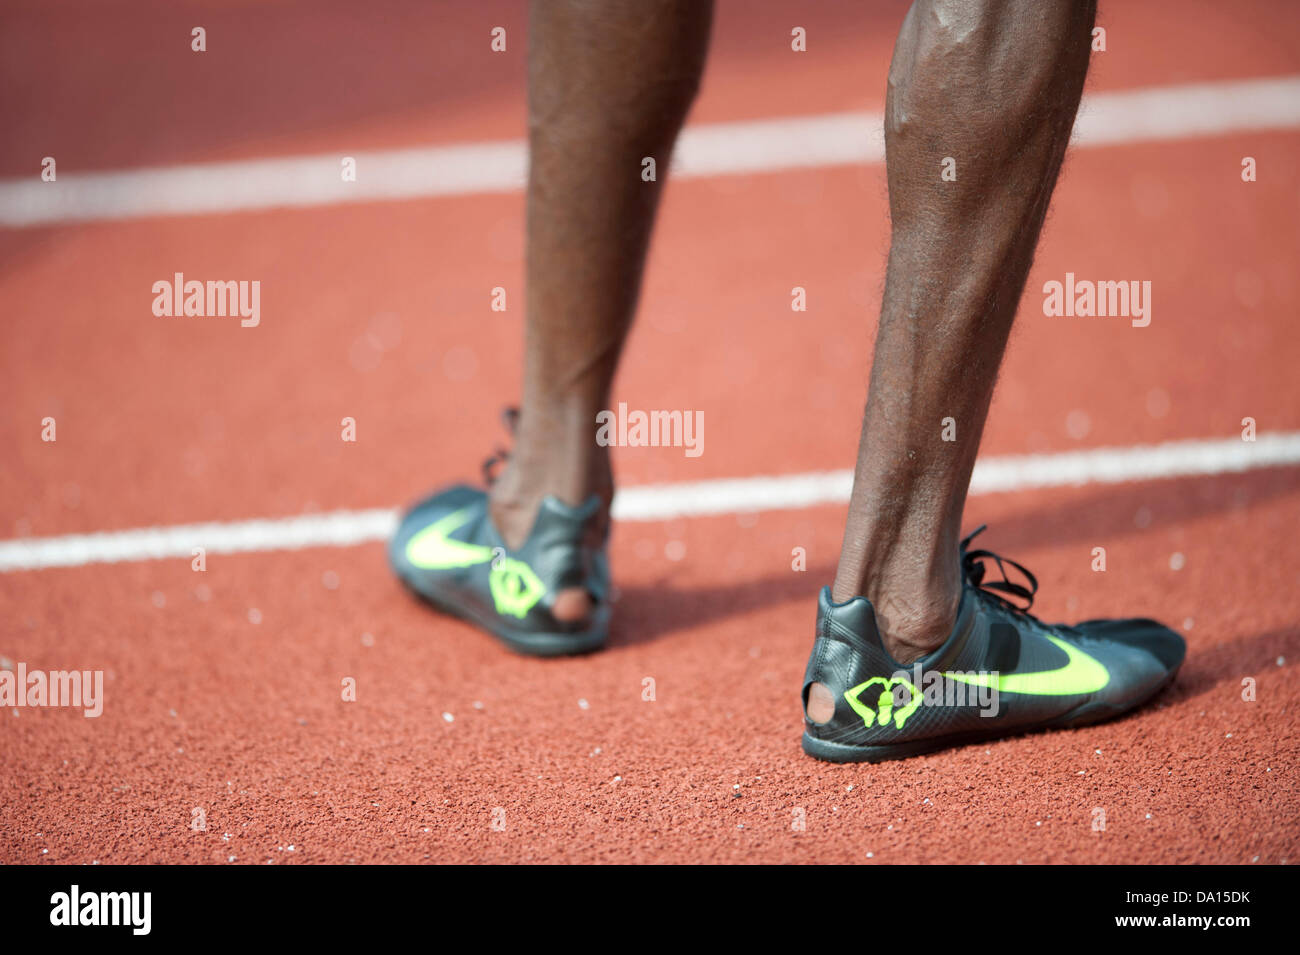 Birmingham, UK. 30th June 2013. Mo Farah of Great Britain is interviewed after winning the men's 5000m event - Stock Image